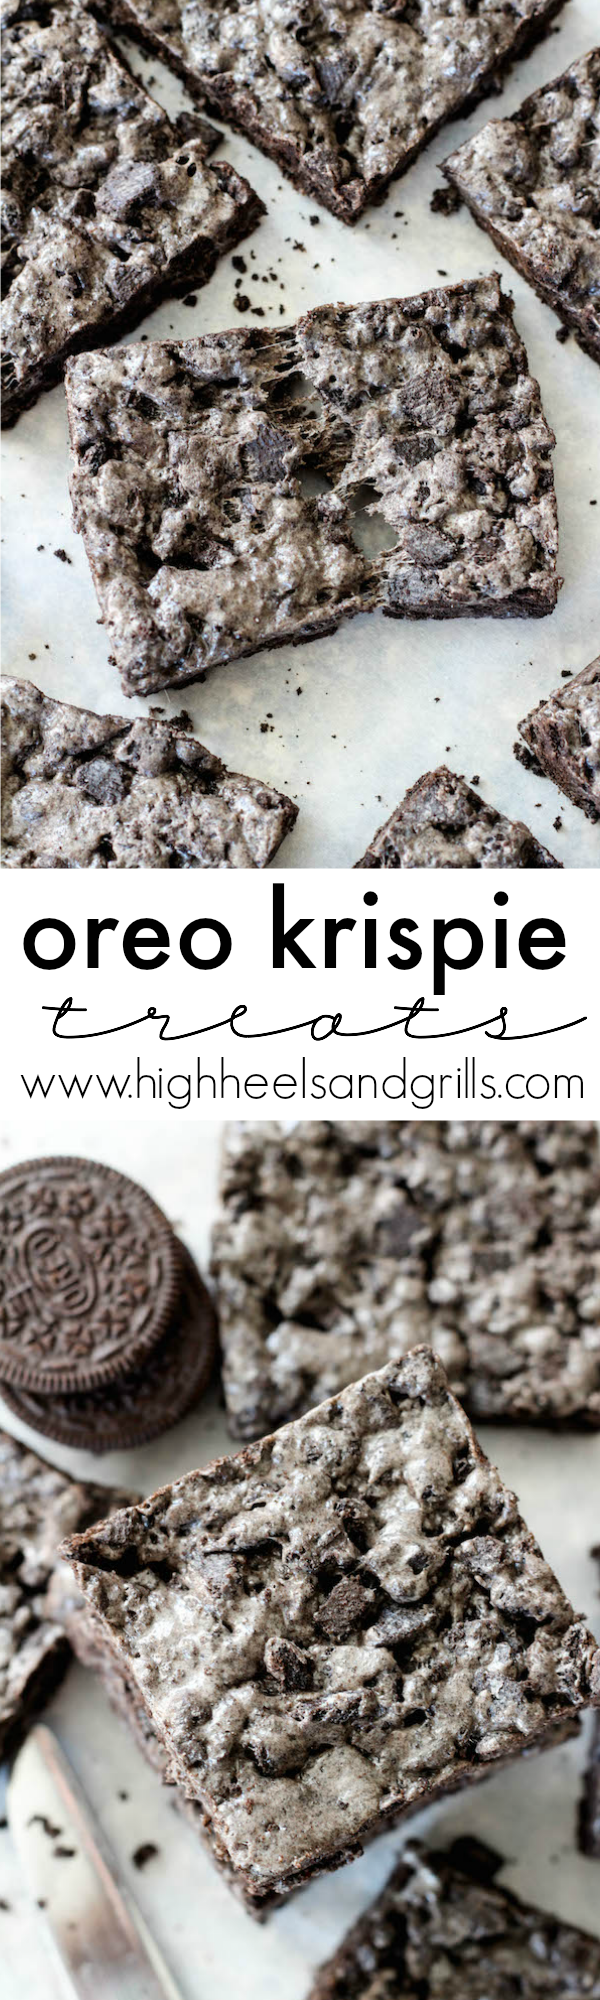 These Oreo Krispie Treats are a fun twist on traditional rice krispie treats! Instead of using Rice Krispie Cereal, the base is made from chunky Oreos crumbs. Toss those in with some butter and marshmallows and they taste like a dream!